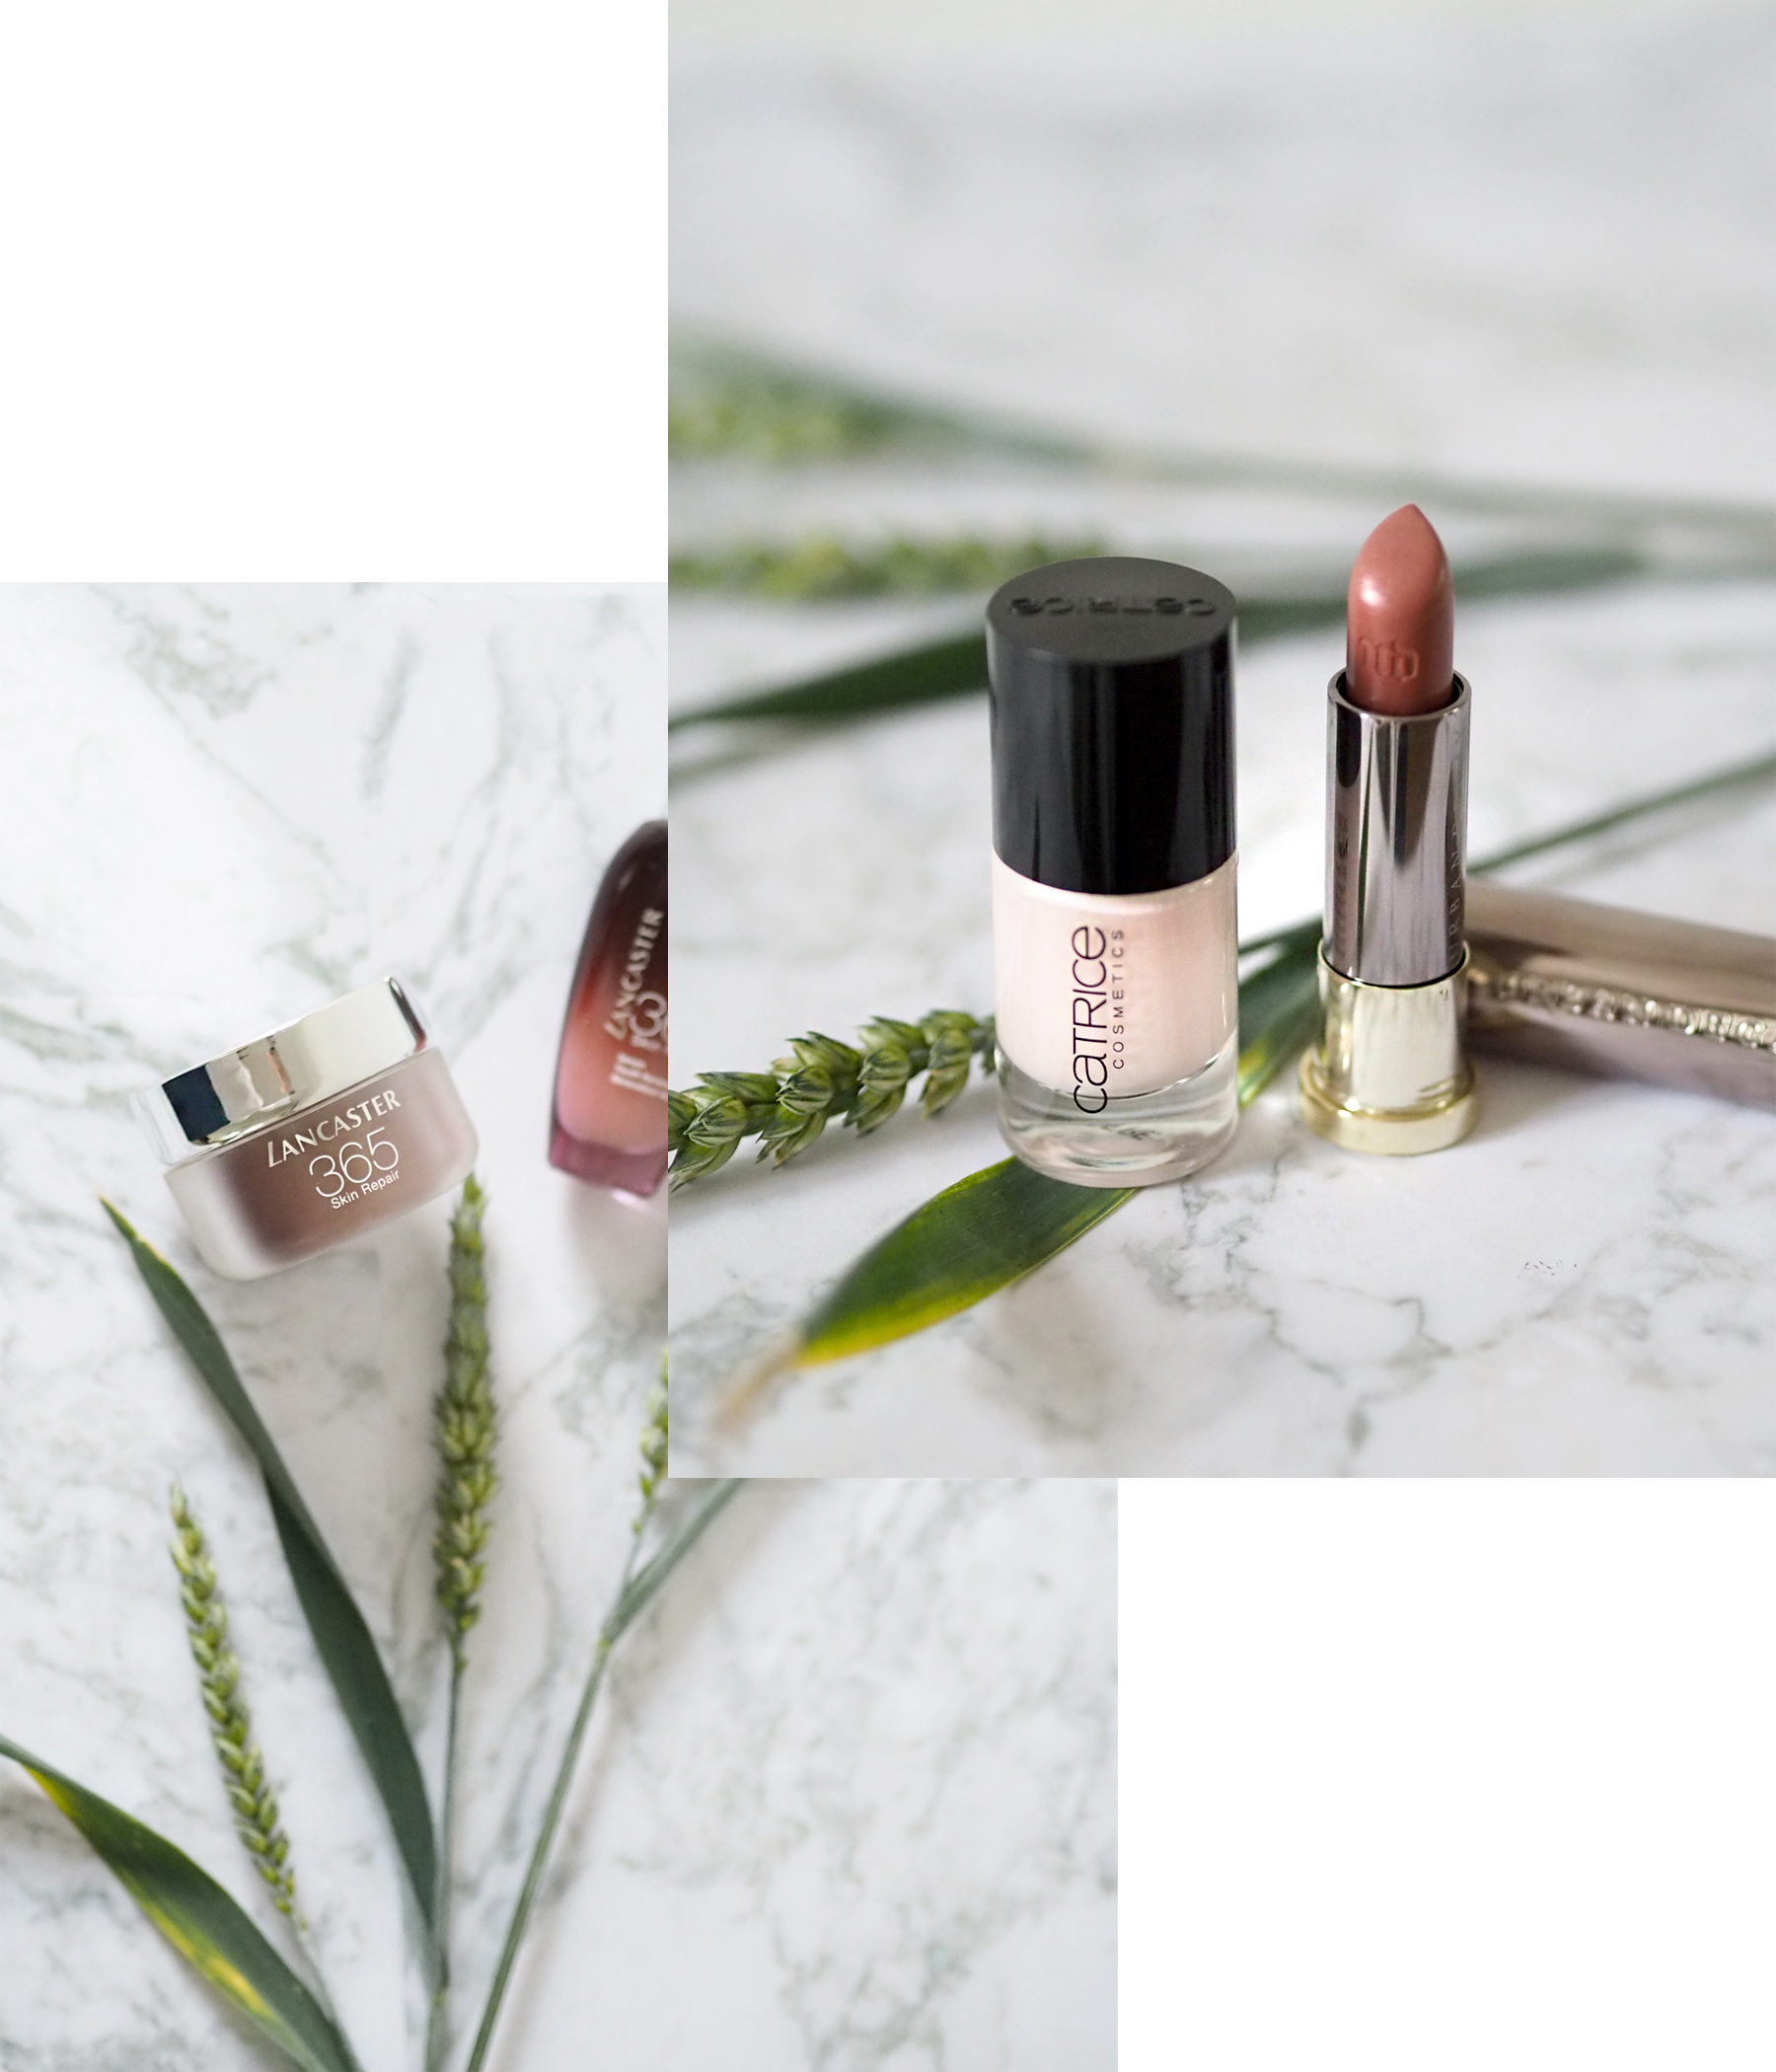 beauty favourites catrice nail polish urban decay vice lipstick lancaster 365 skicare ysl mon paris perfume makeup amu beautyblogger makeupblogger review products summer skin scent perfume newin shopping cats & dogs beautyblog ricarda schernus 1